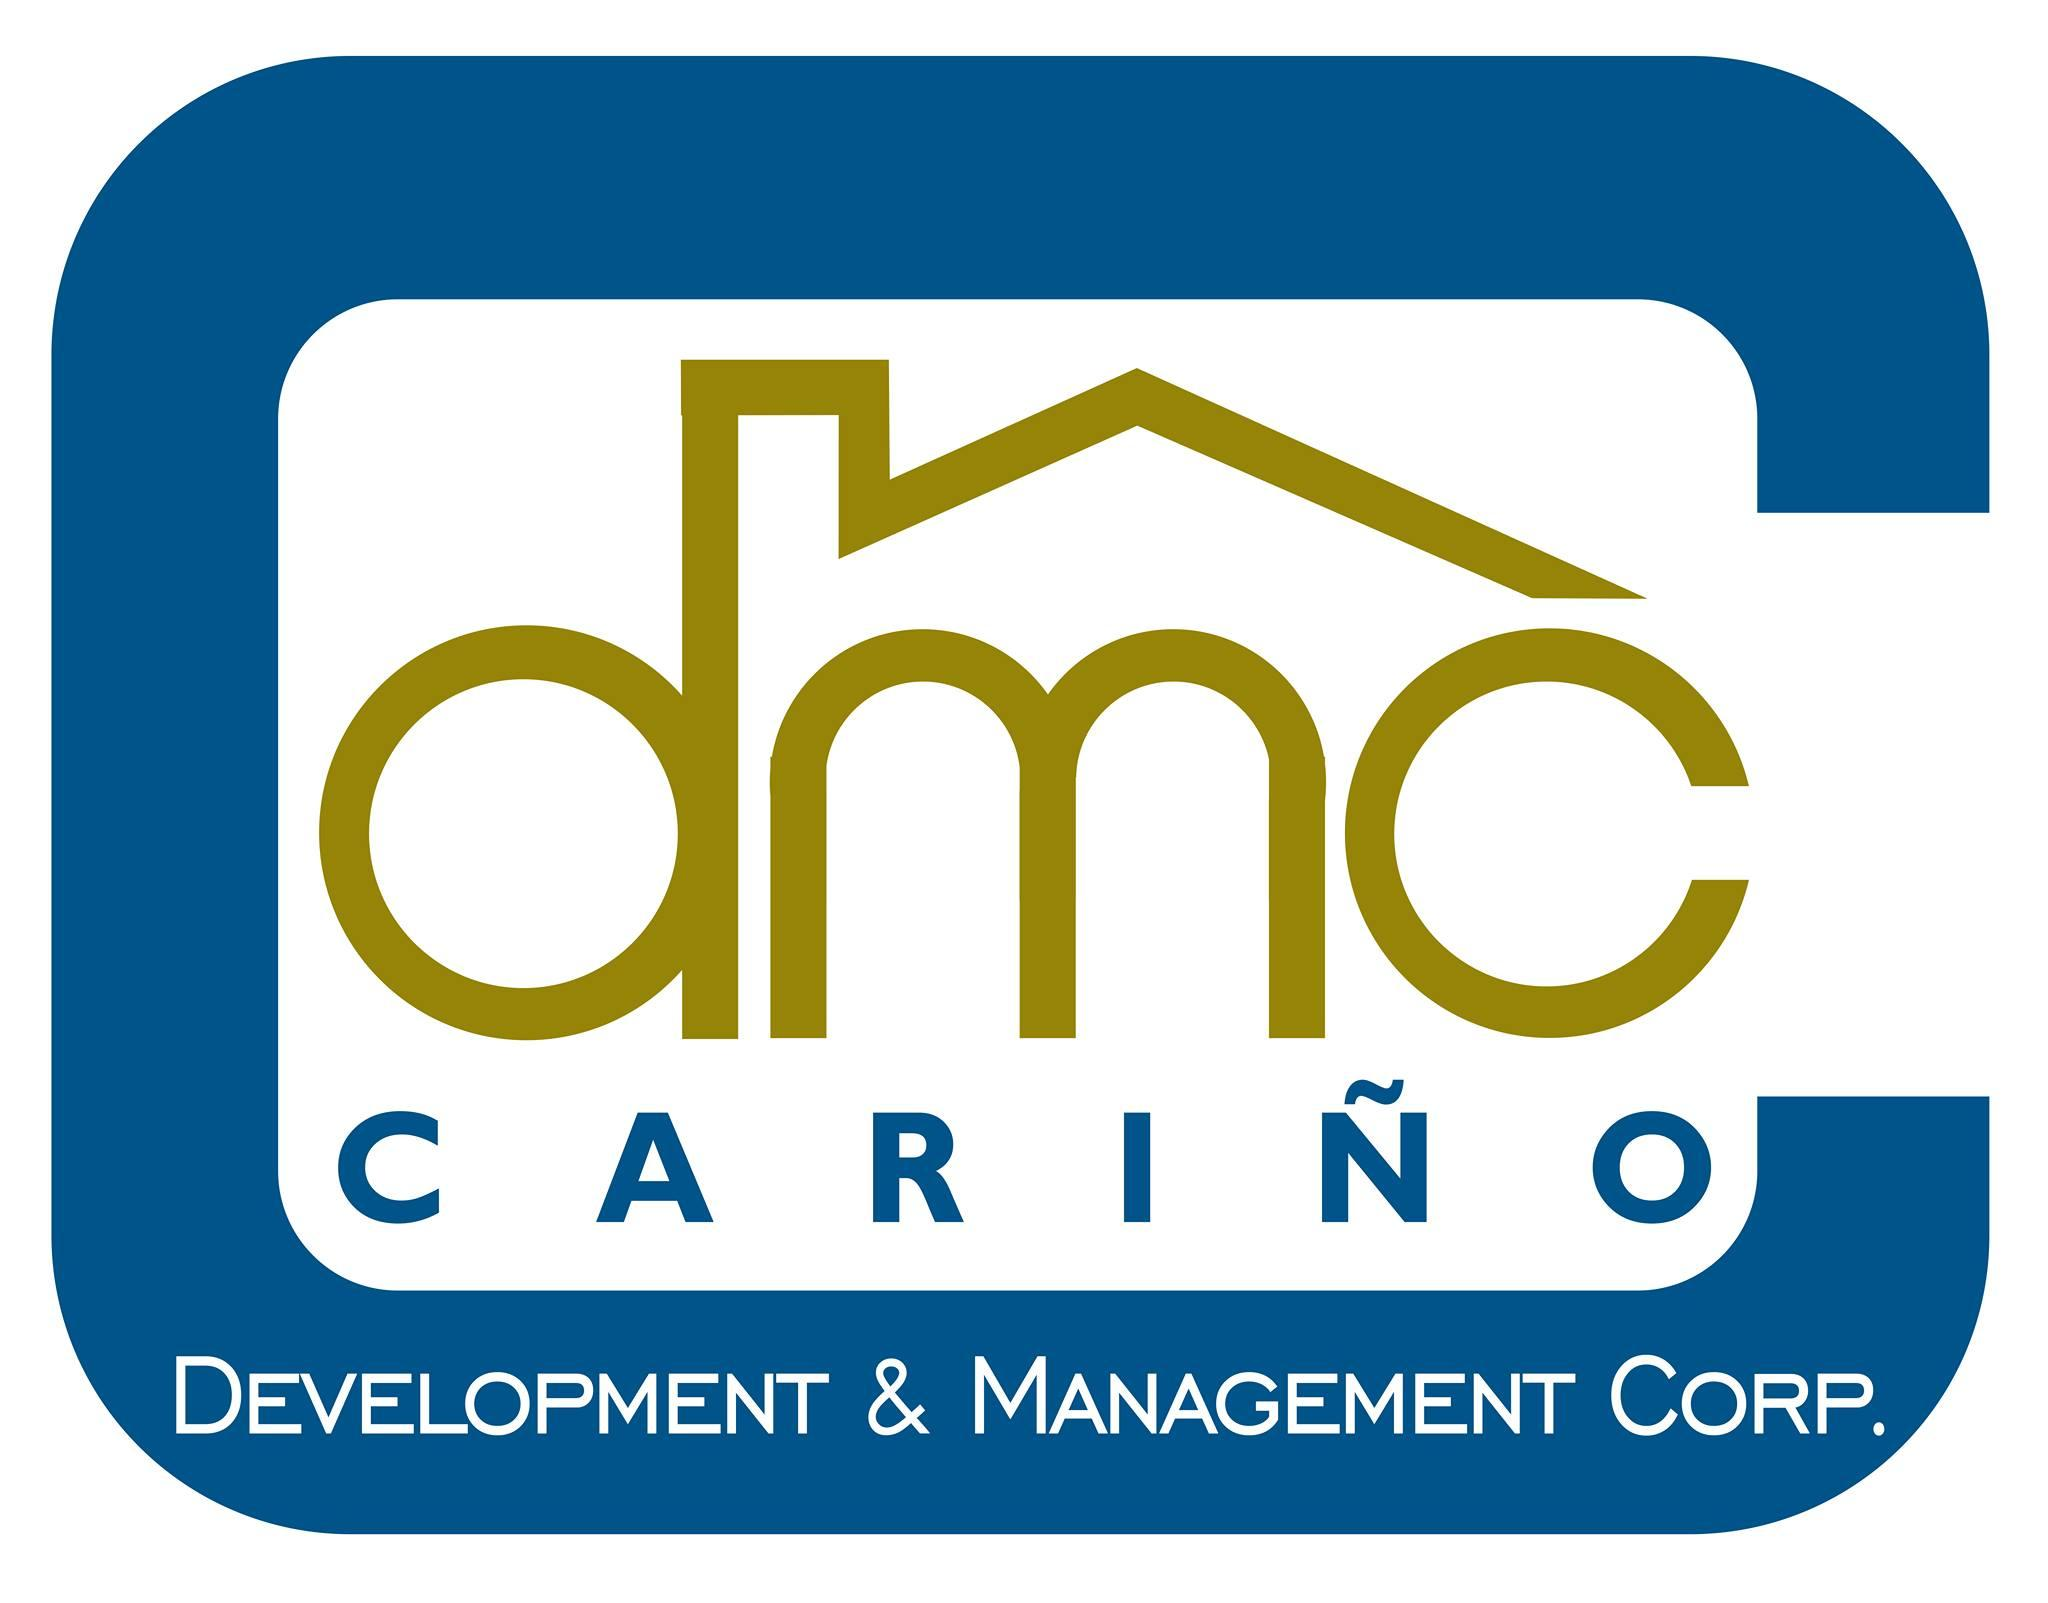 Carino Development and Management Corporation